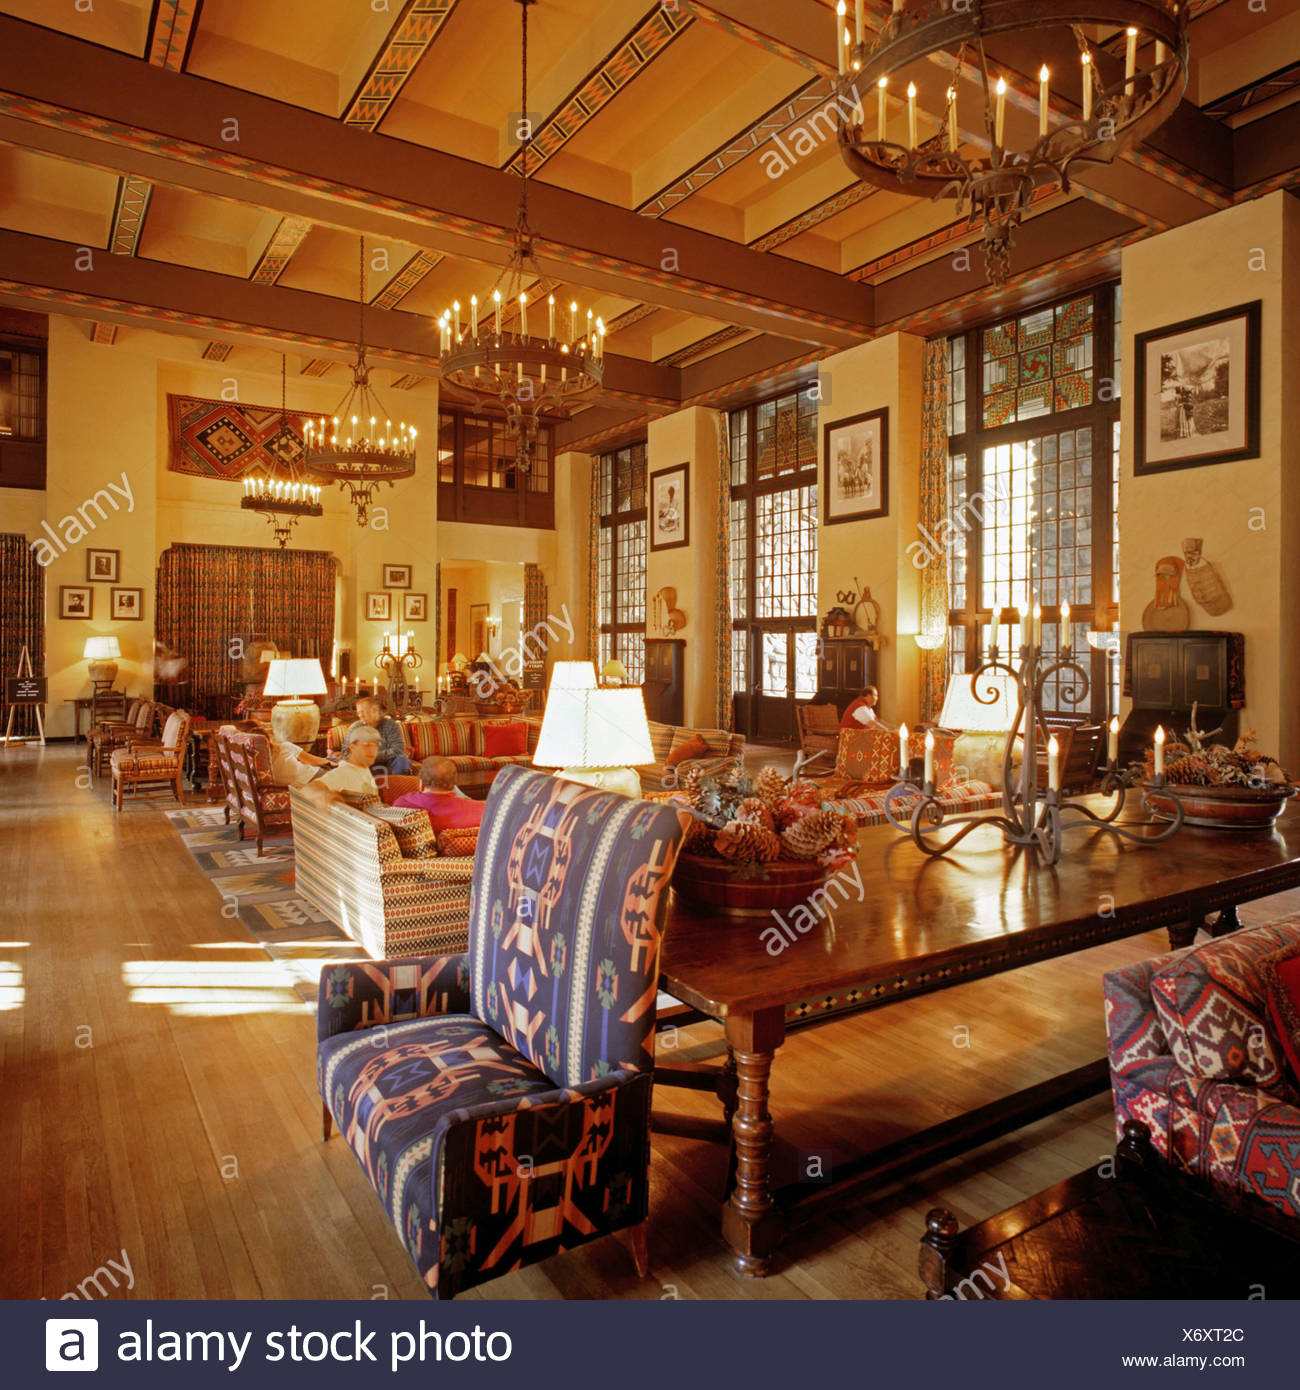 The Ahwahnee Hotel Stock Photos & The Ahwahnee Hotel Stock